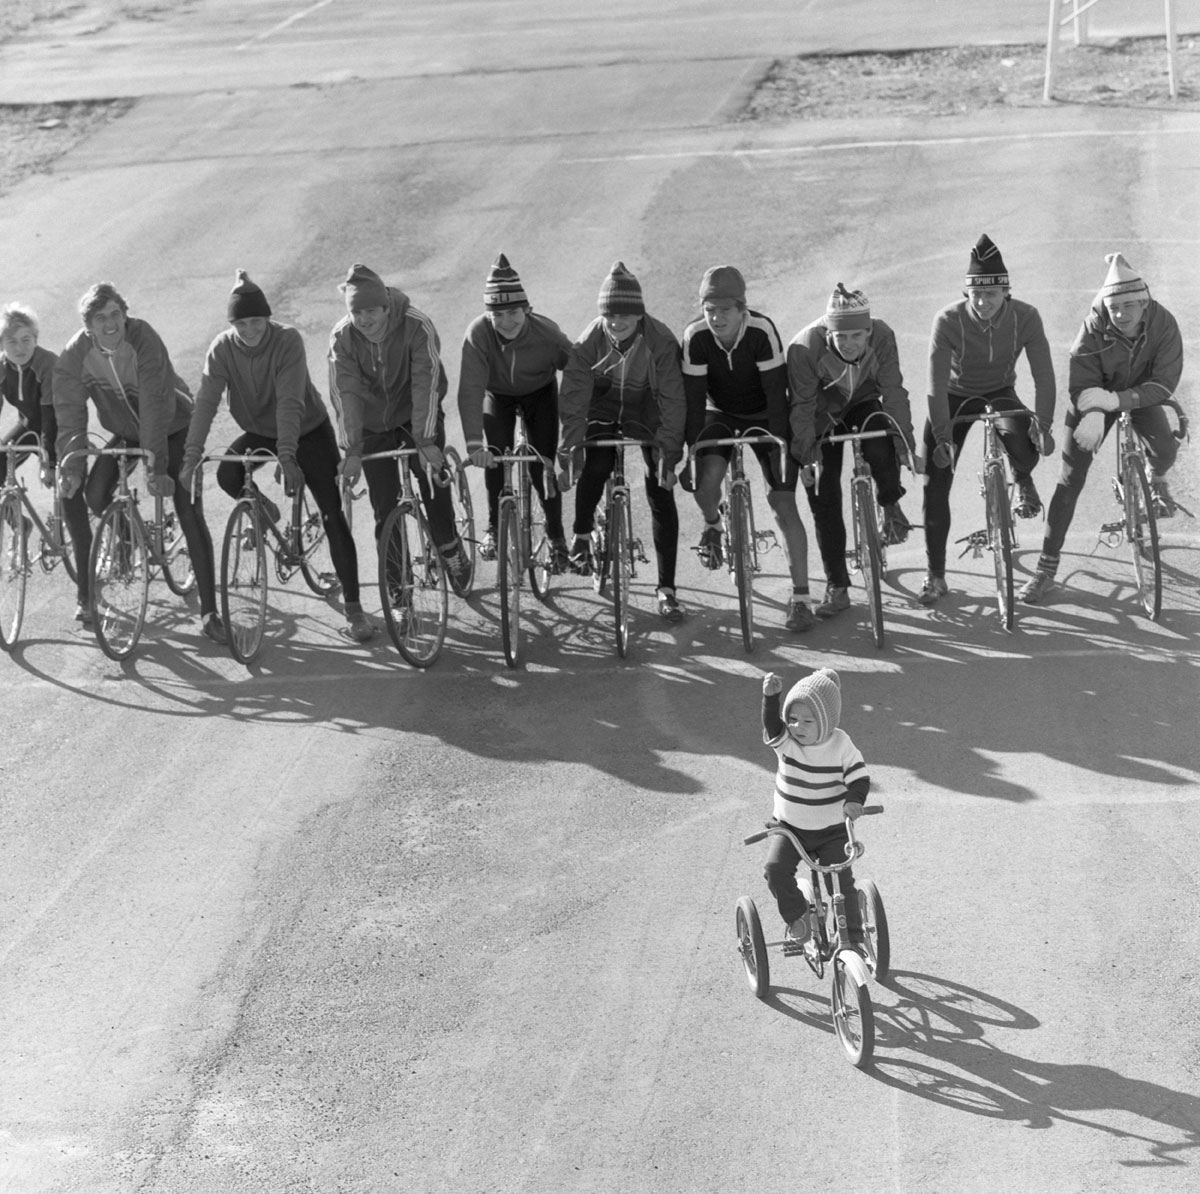 1986. Students in the town of Jambyl (now Taraz, Kazakhstan) at the starting line before a cycling competition